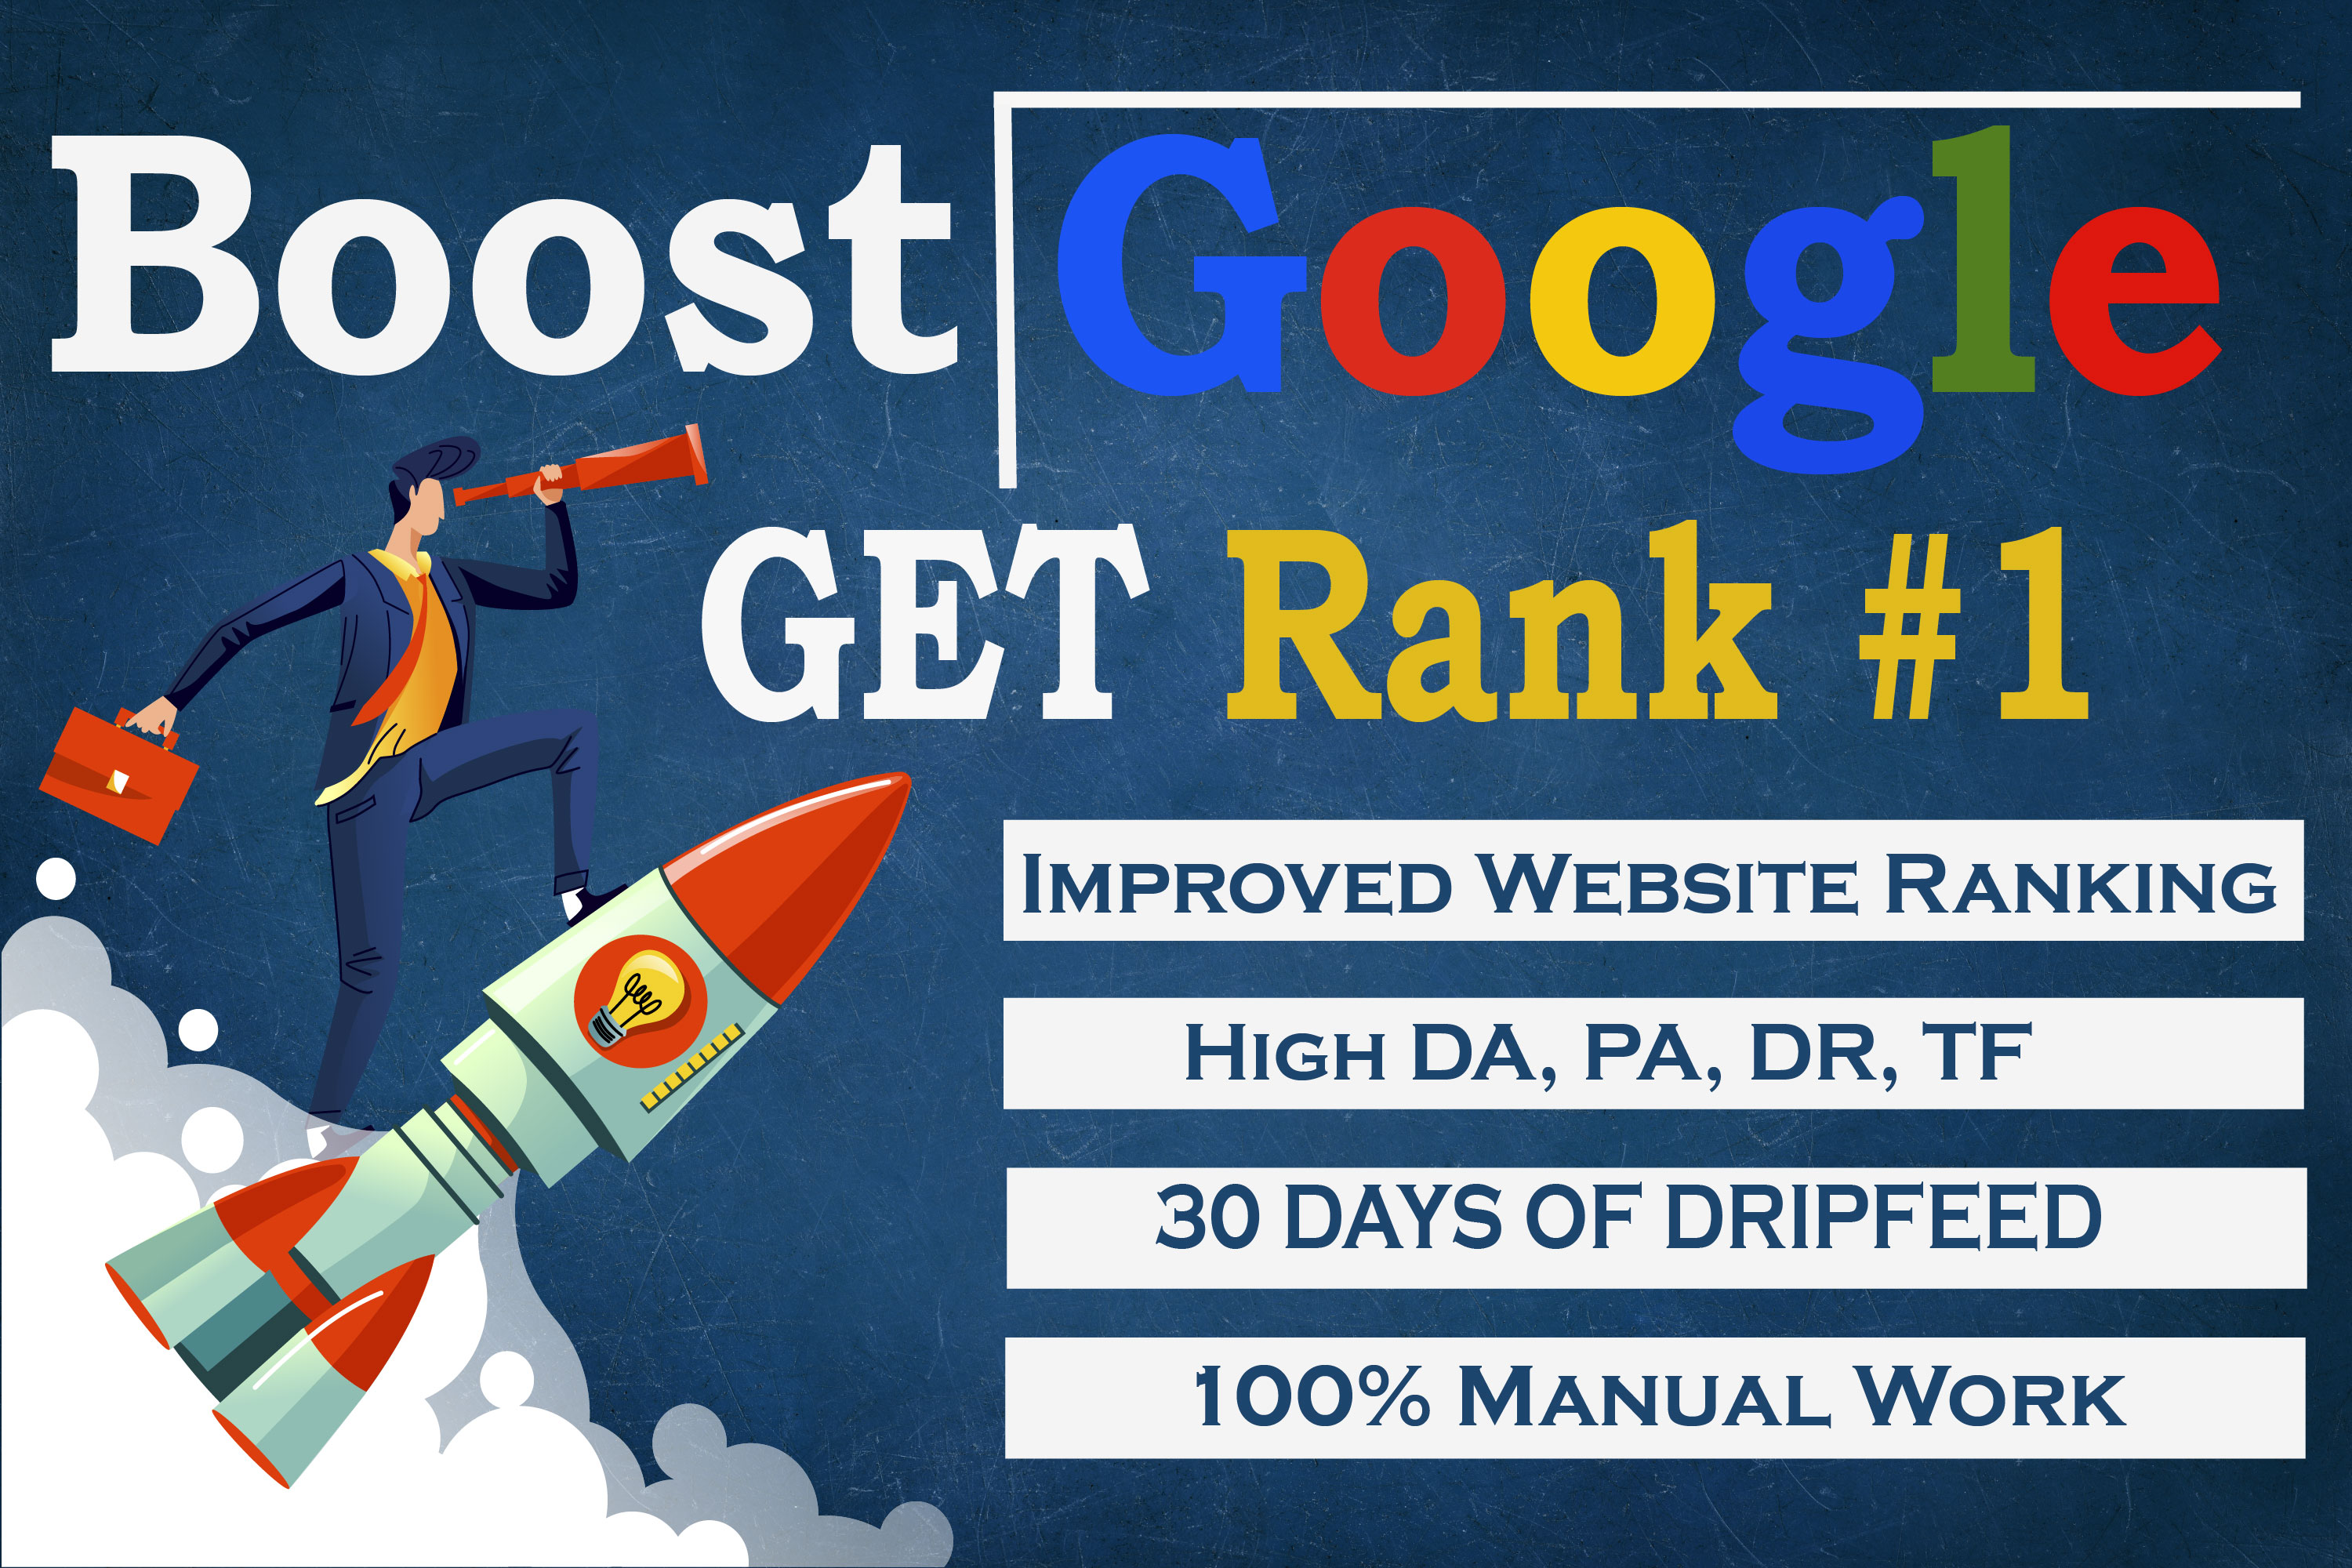 All in one monthly SEO package for boost your website Google Rank